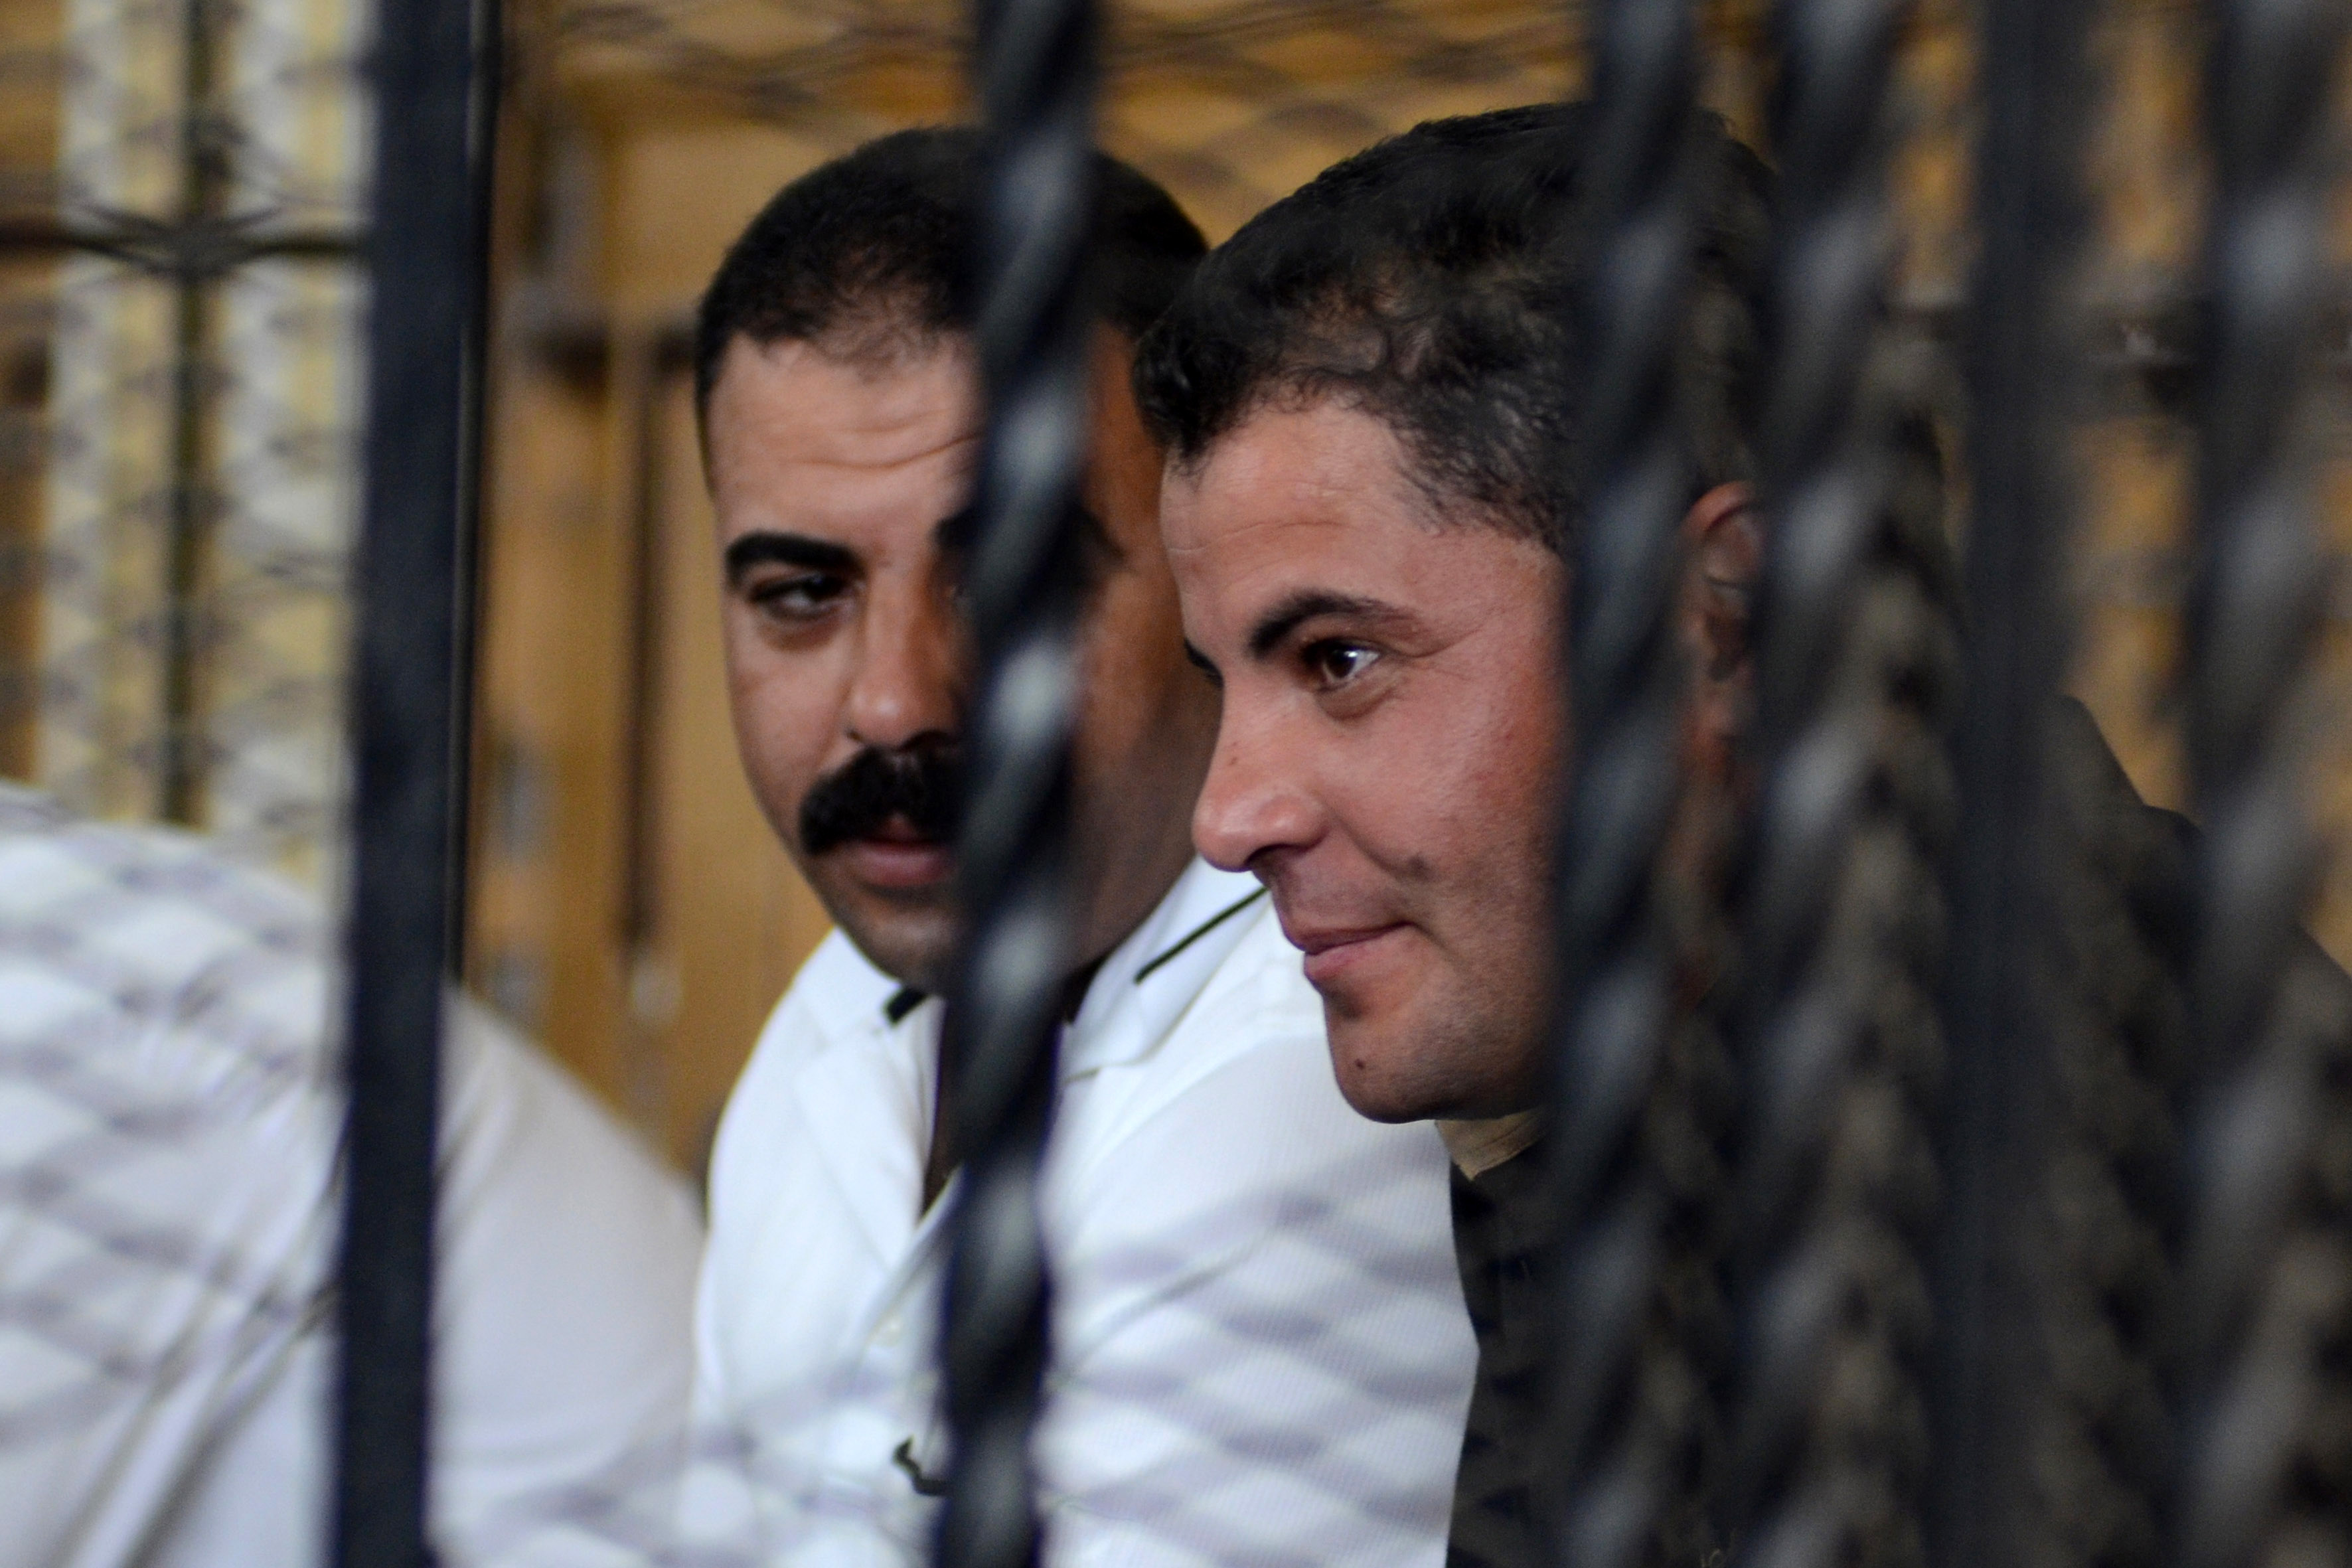 Egyptian police officers Awad Ismail Suleiman (L) and Mahmud Salah Amin, accused of using excessive force and killing 28-year-old blogger Khaled Said, sit behind bars in the defendants dock during their trial in Alexandria on October 1, 2013.  (AFP Photo)